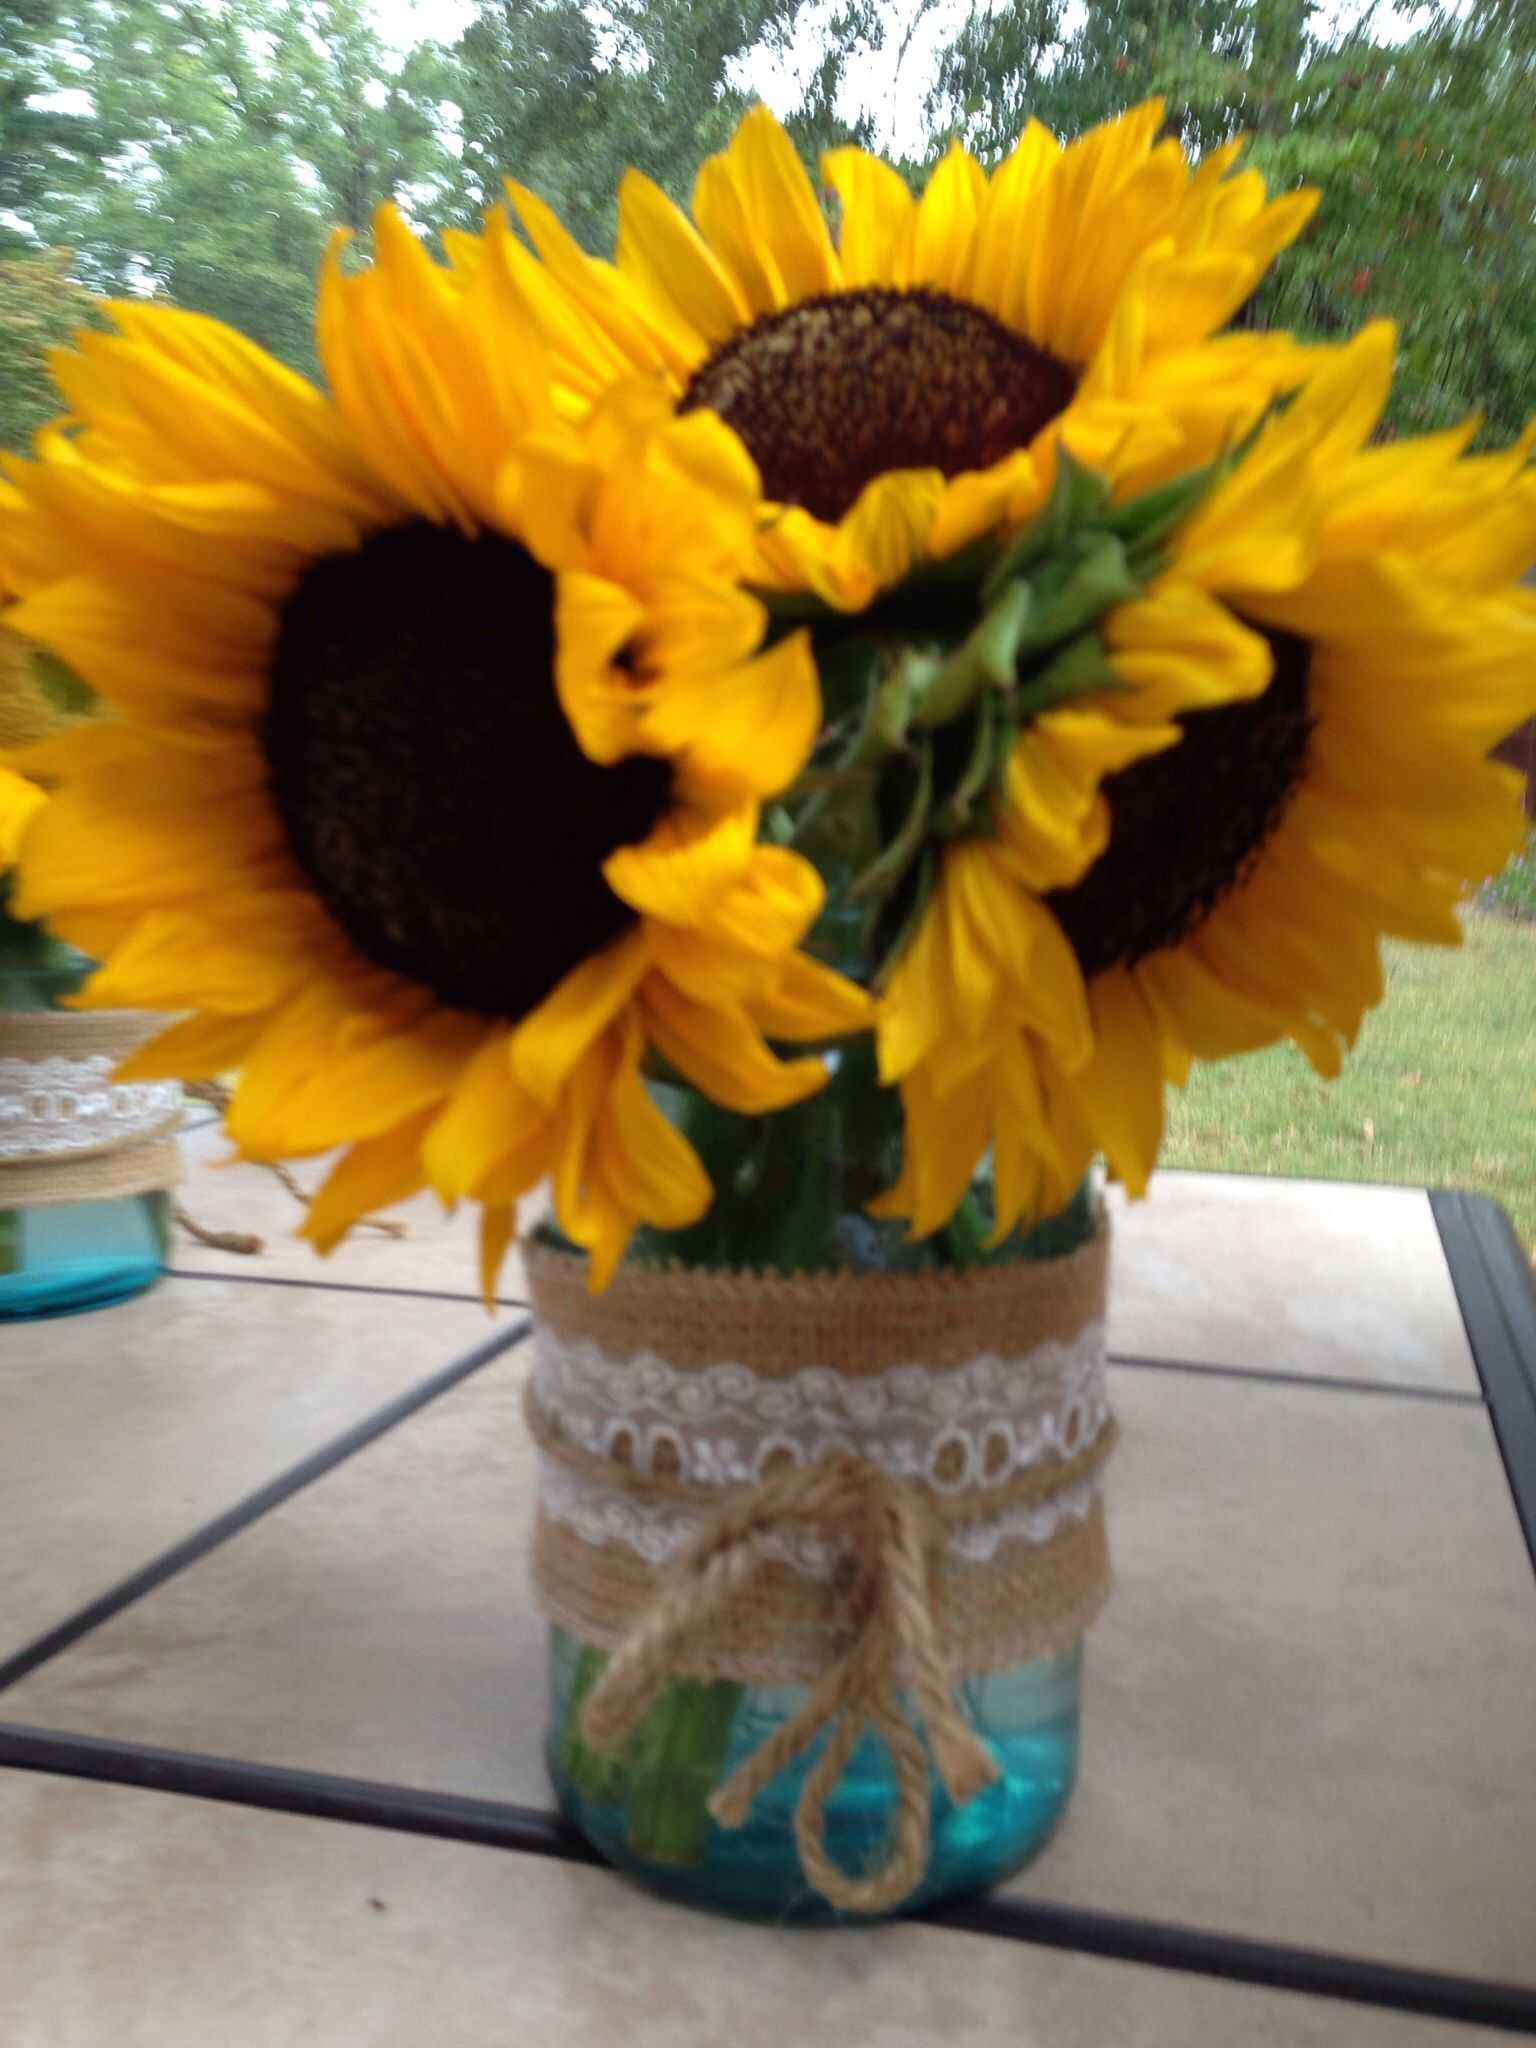 A vintage blue jar burlap ribbon hot glue gun fresh sunflowers